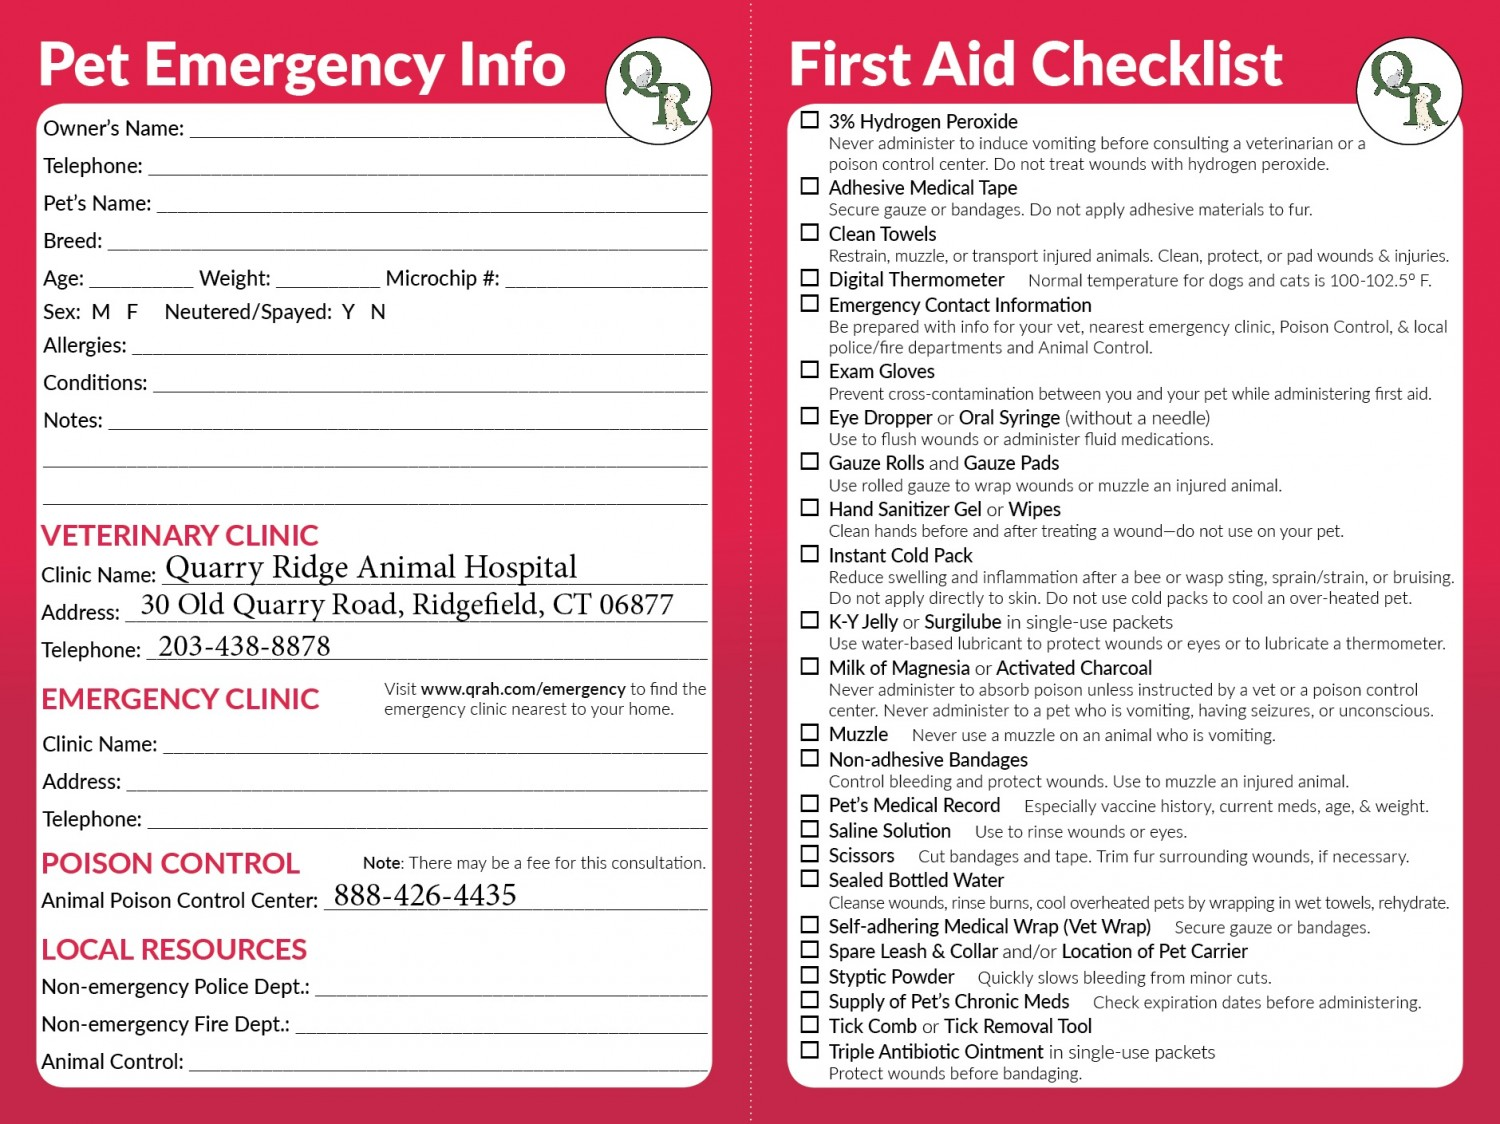 Pet Emergency Info Card and Pet First Aid Kit Checklist